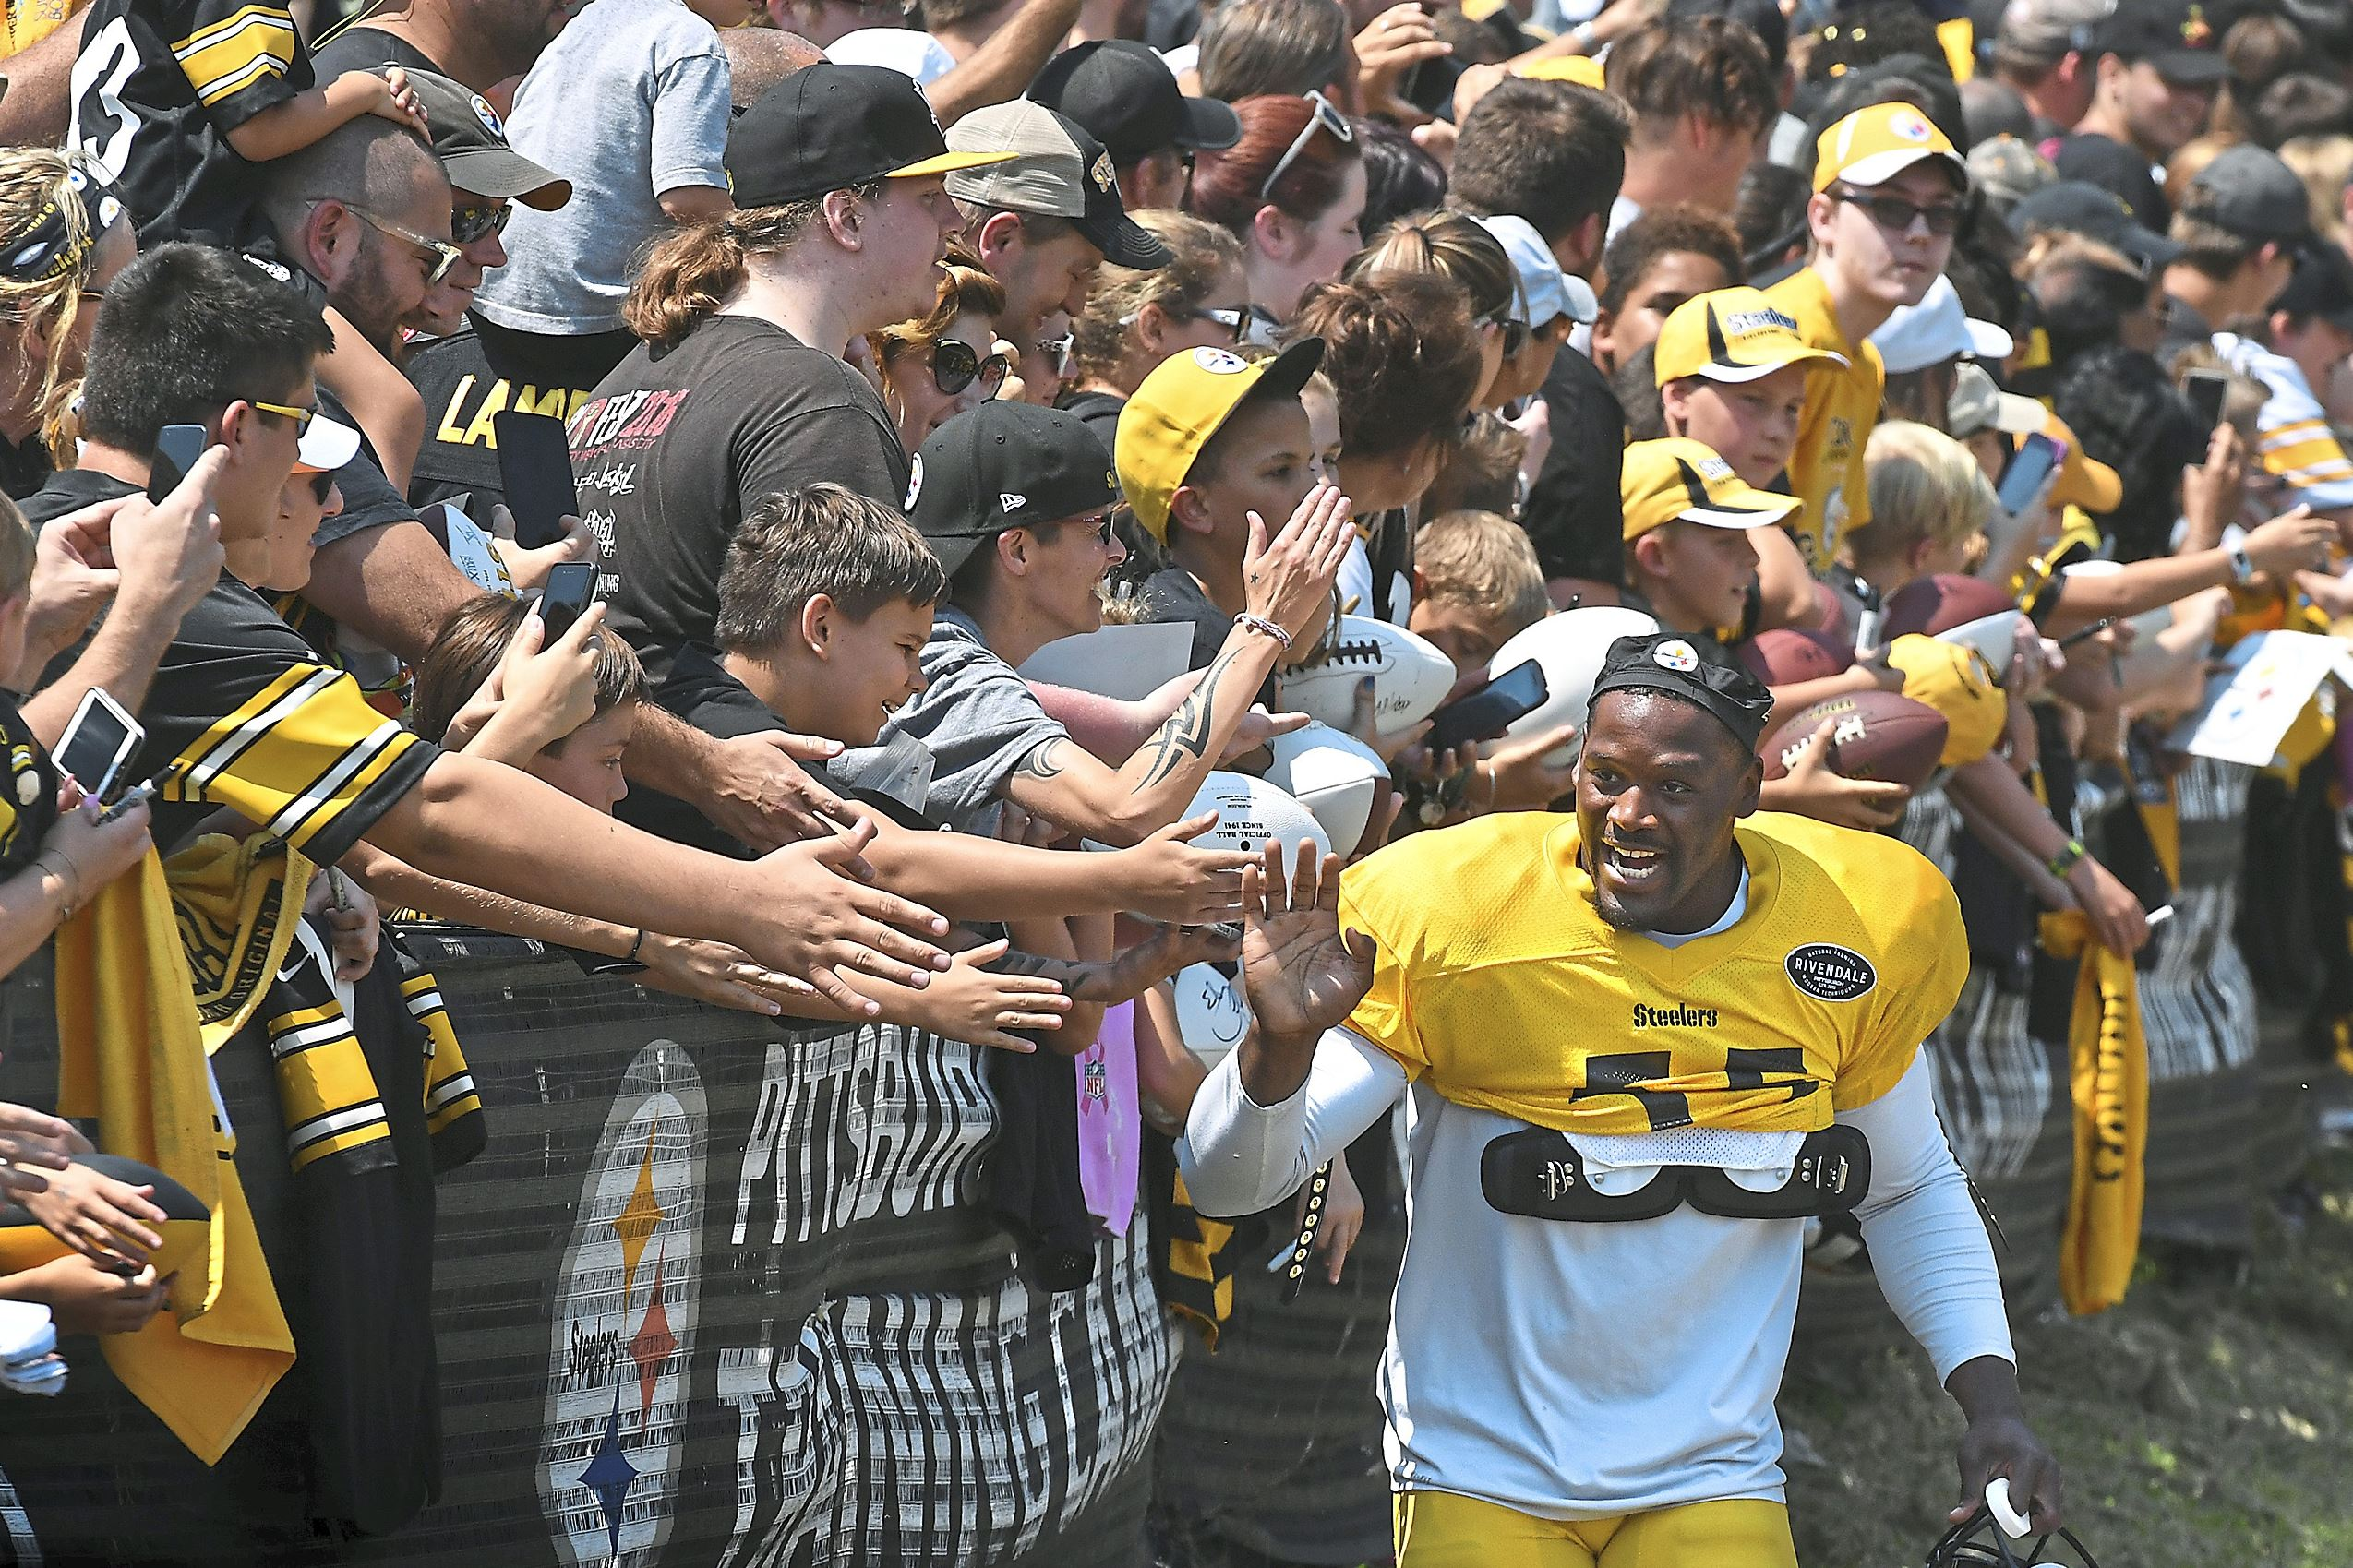 20170730pdSteelersCamp08-2 Arthur Moats high fives fans on his way to afternoon practice at the Pittsburgh Steelers training camp at Saint Vincent College, Latrobe.